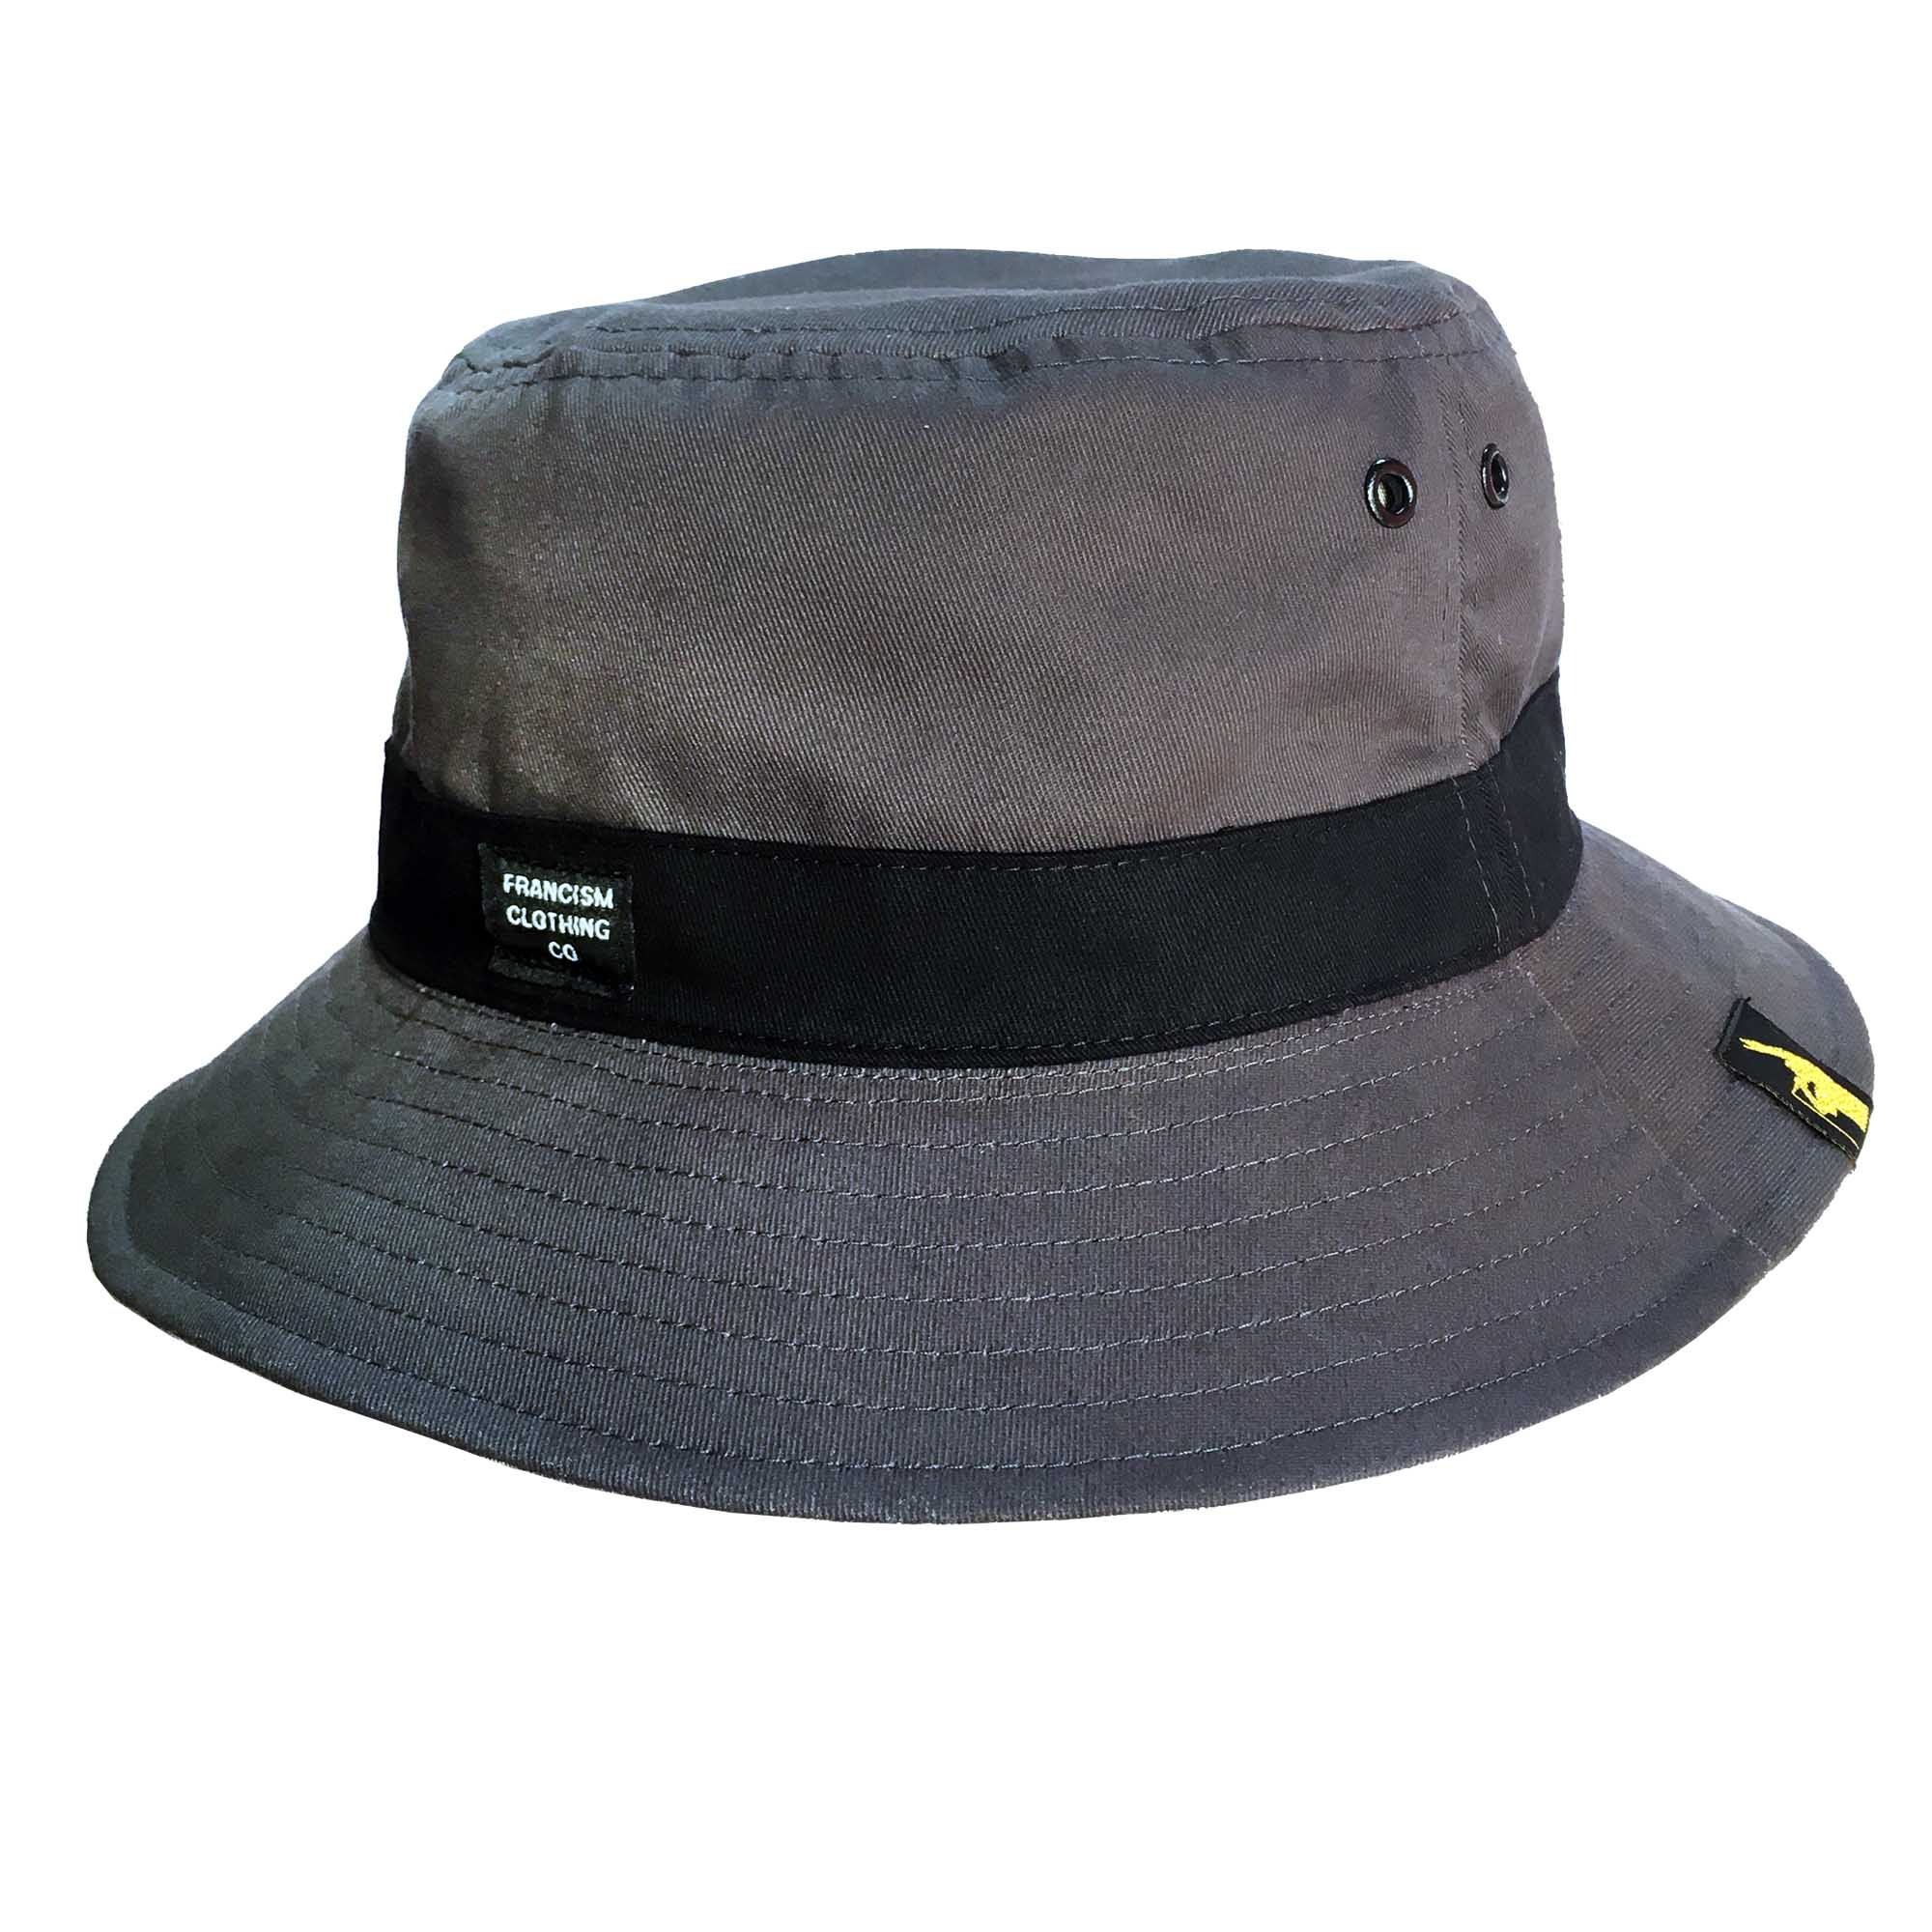 FrancisM Reversible Bucket Hat (Black Logo)